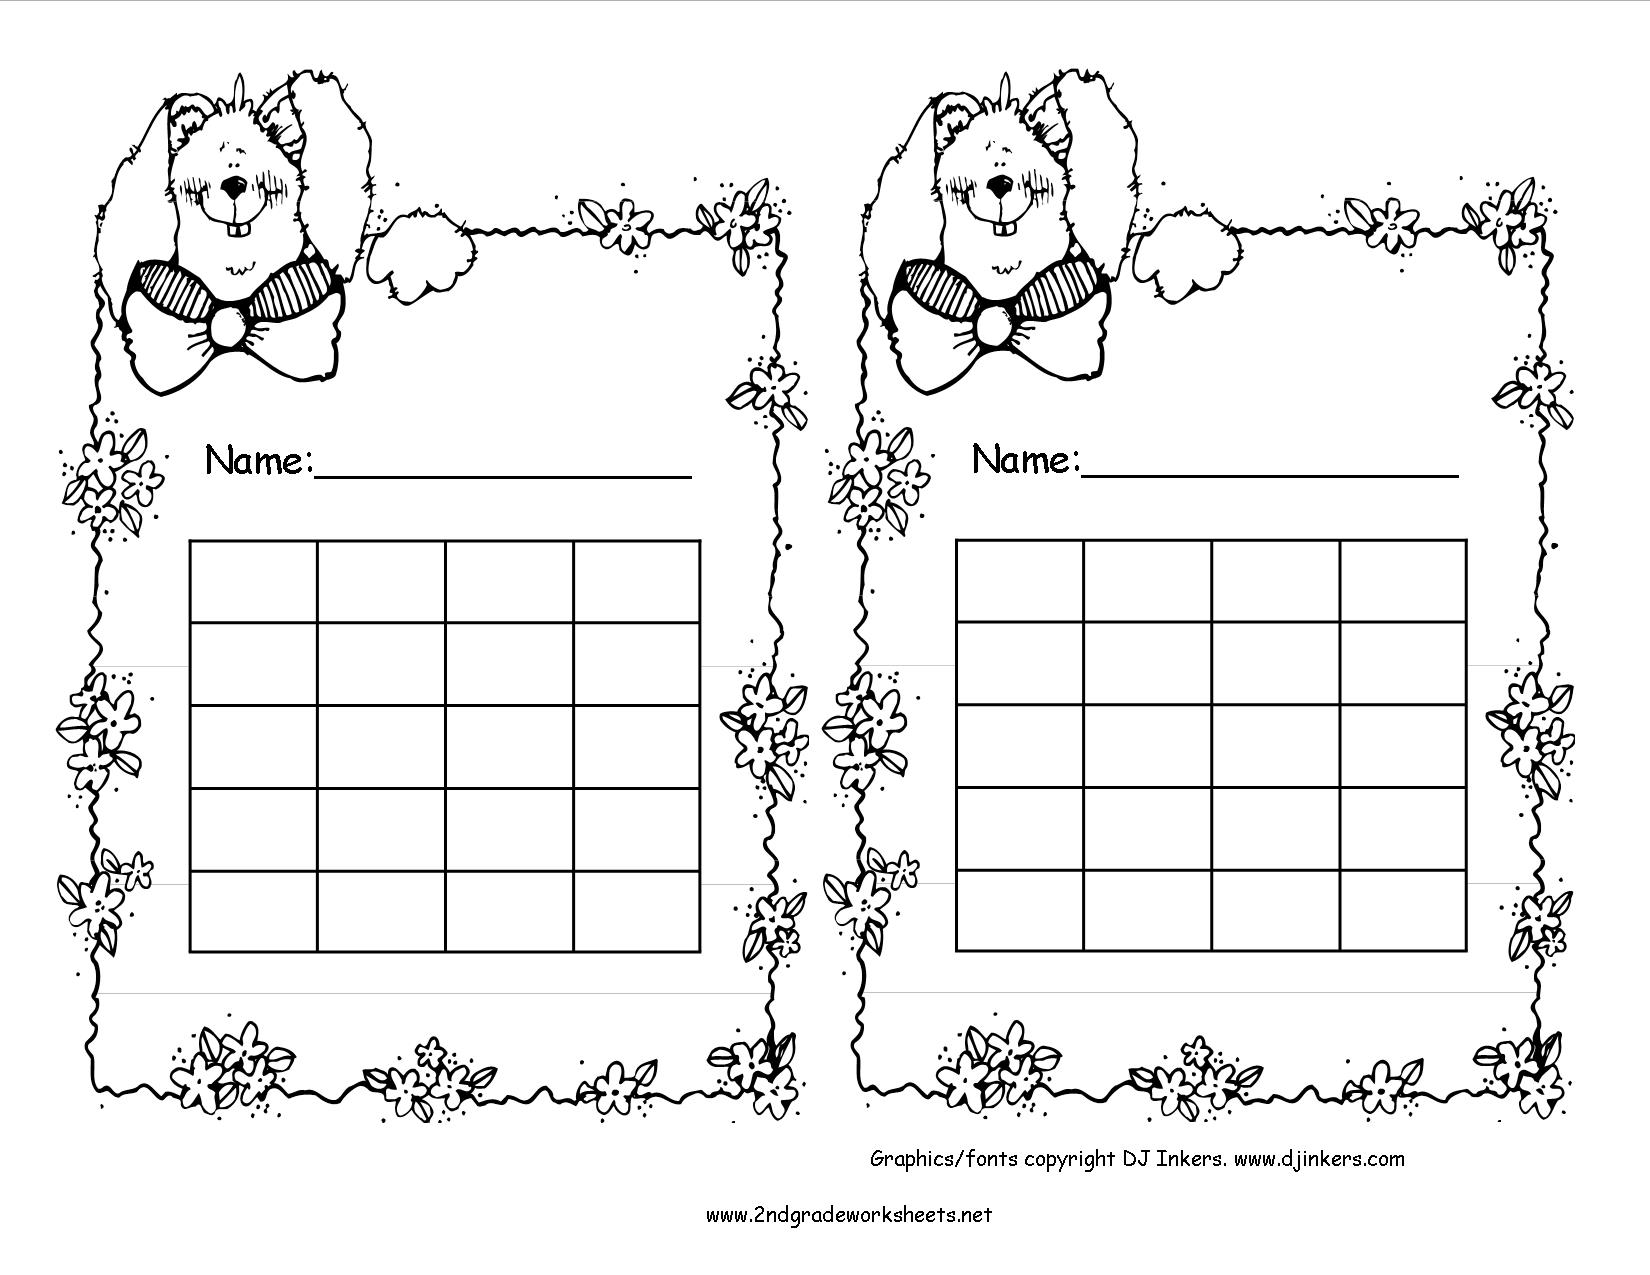 10 Best Images Of Free Civil War Worksheets